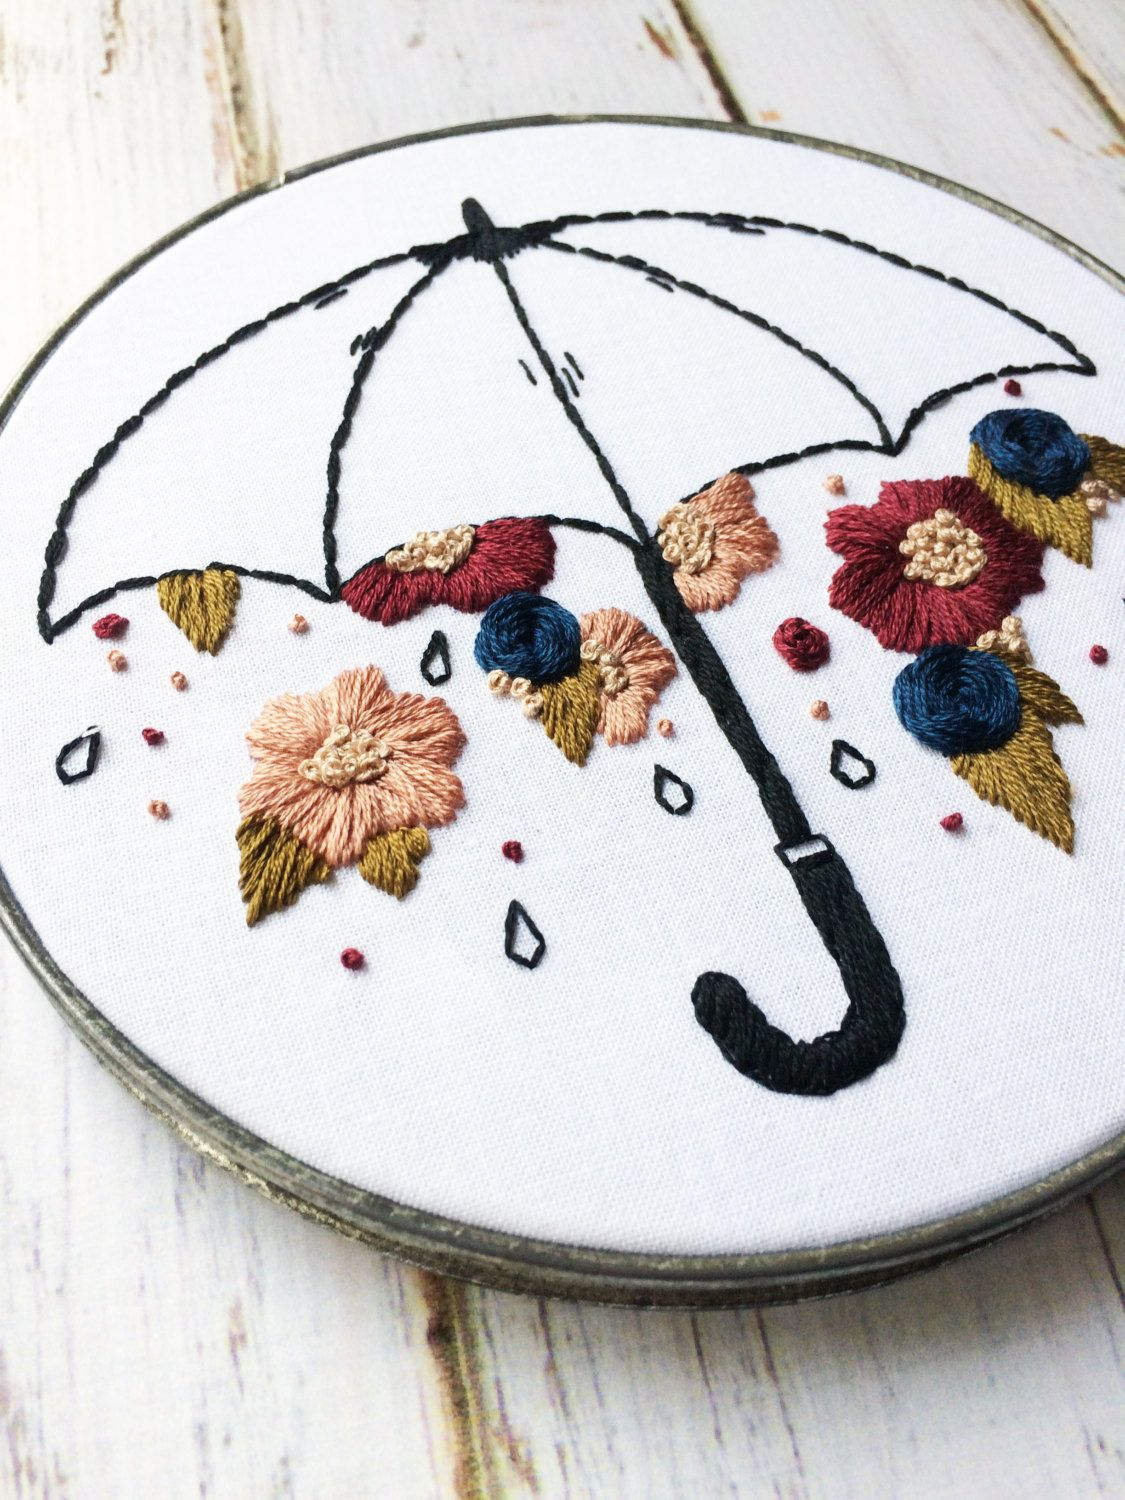 Raining Flowers Hand Embroidery hoop art Wildflower embroidery ...